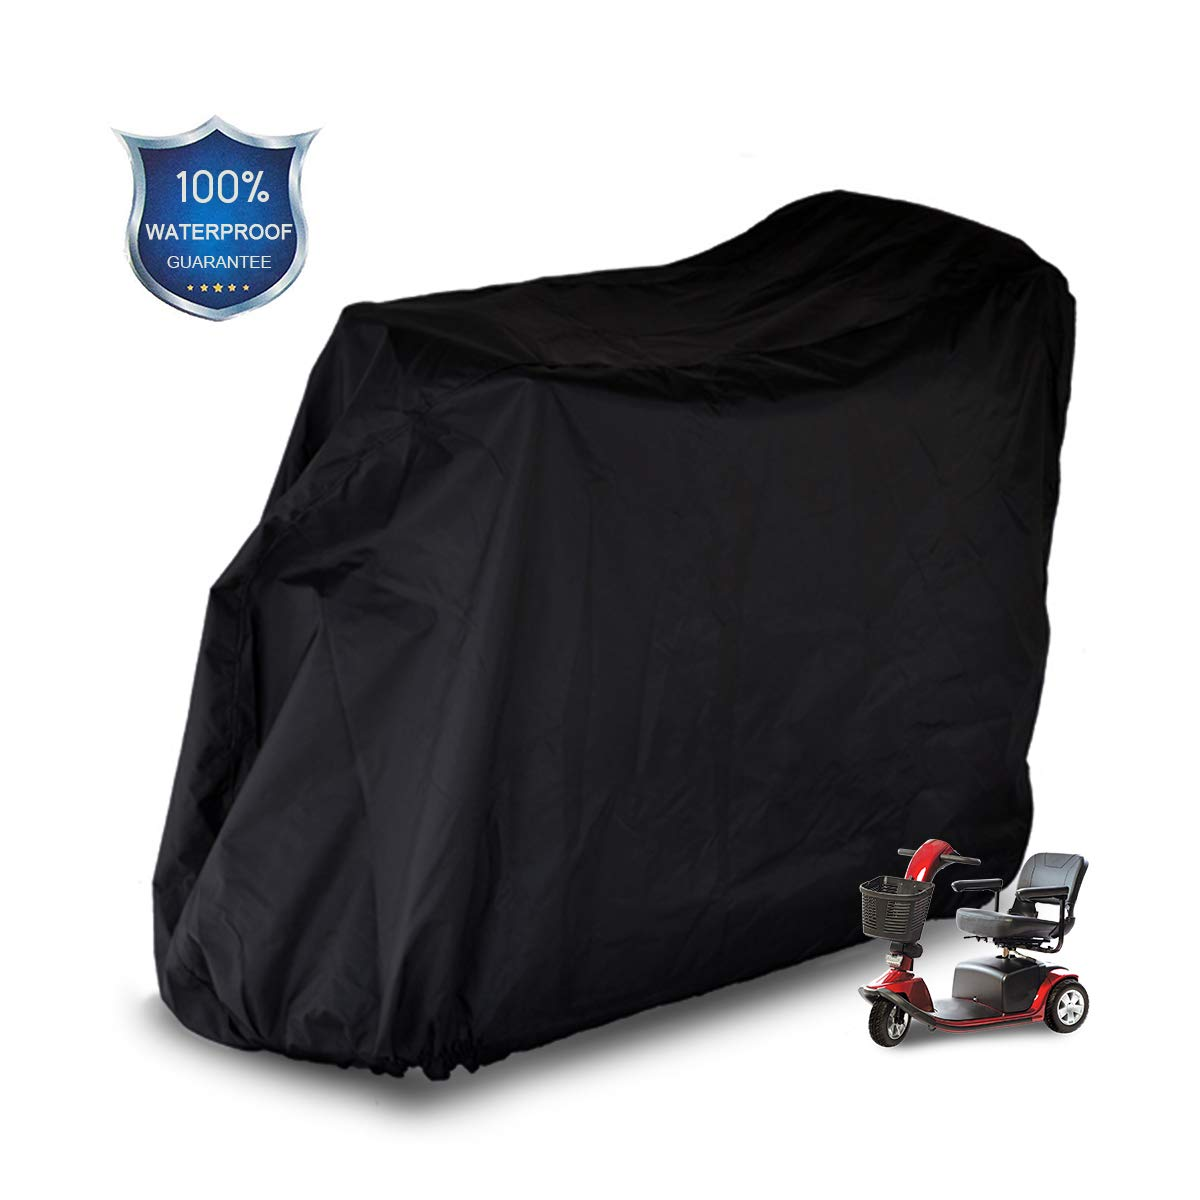 Mobility Scooter Storage Cover, 300D Oxford Fabric Scooter Weather Cover with 2 Buckles - Heavy Duty, Weatherproof, Durable with Free Storage Bag By Valchoose (Black) by Valchoose